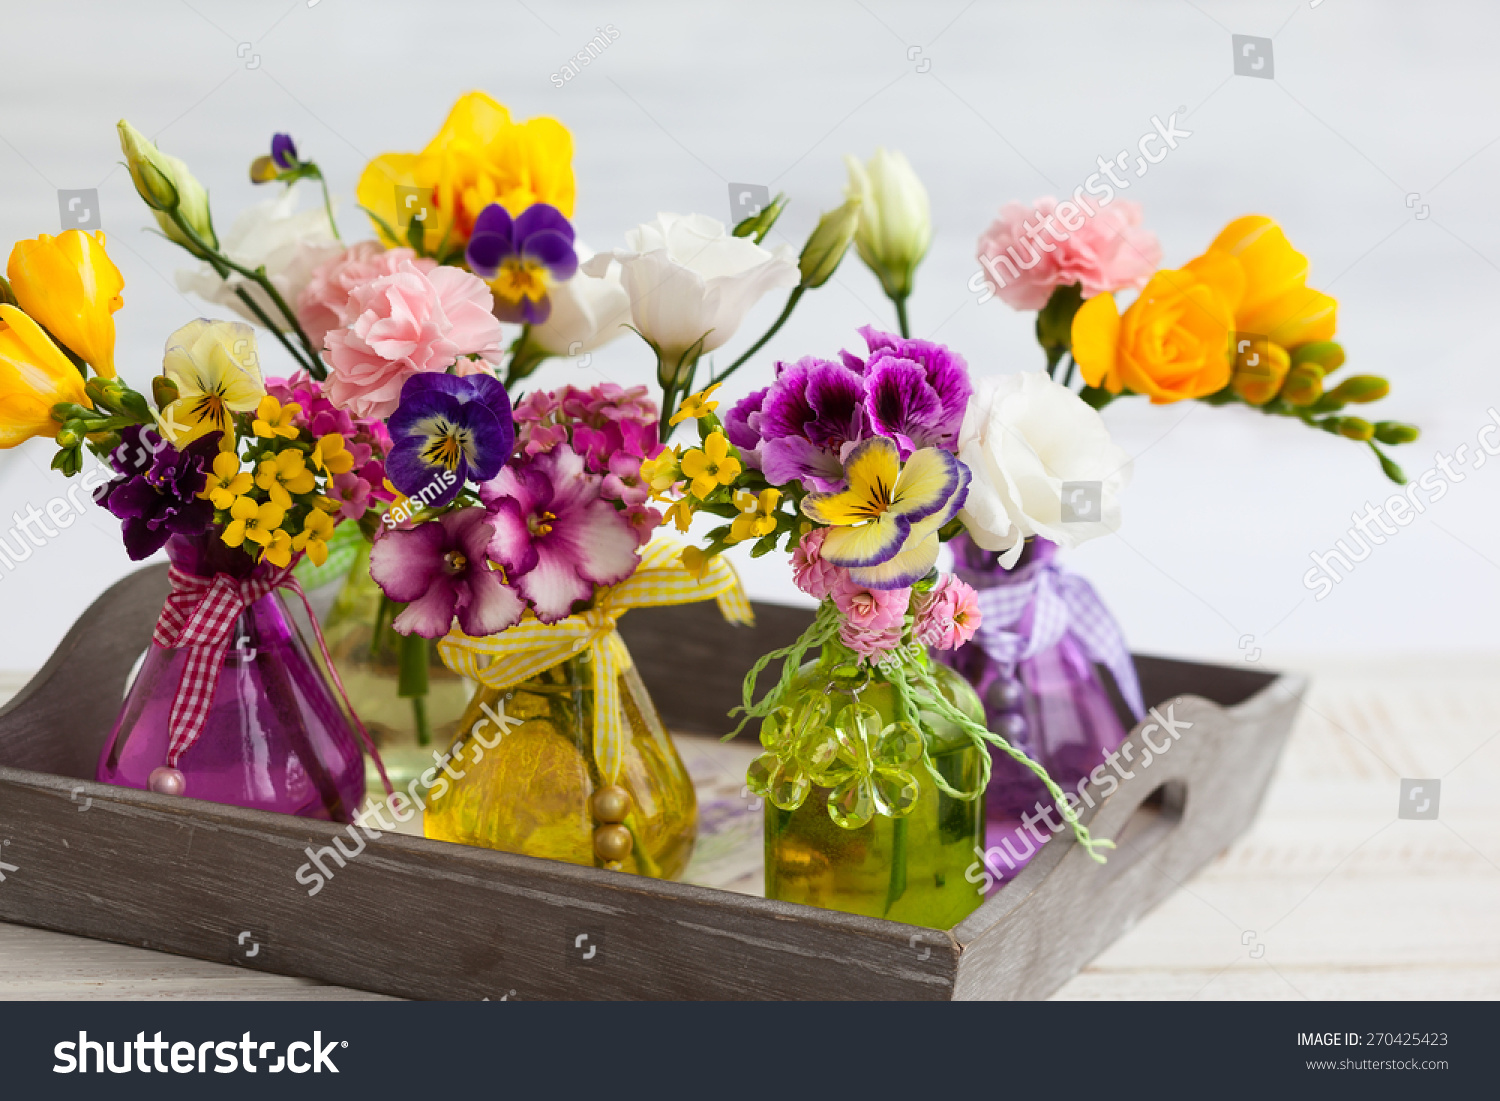 Beautiful Fresh Flowers In Glass Bottles On The Wooden Table Ez Canvas